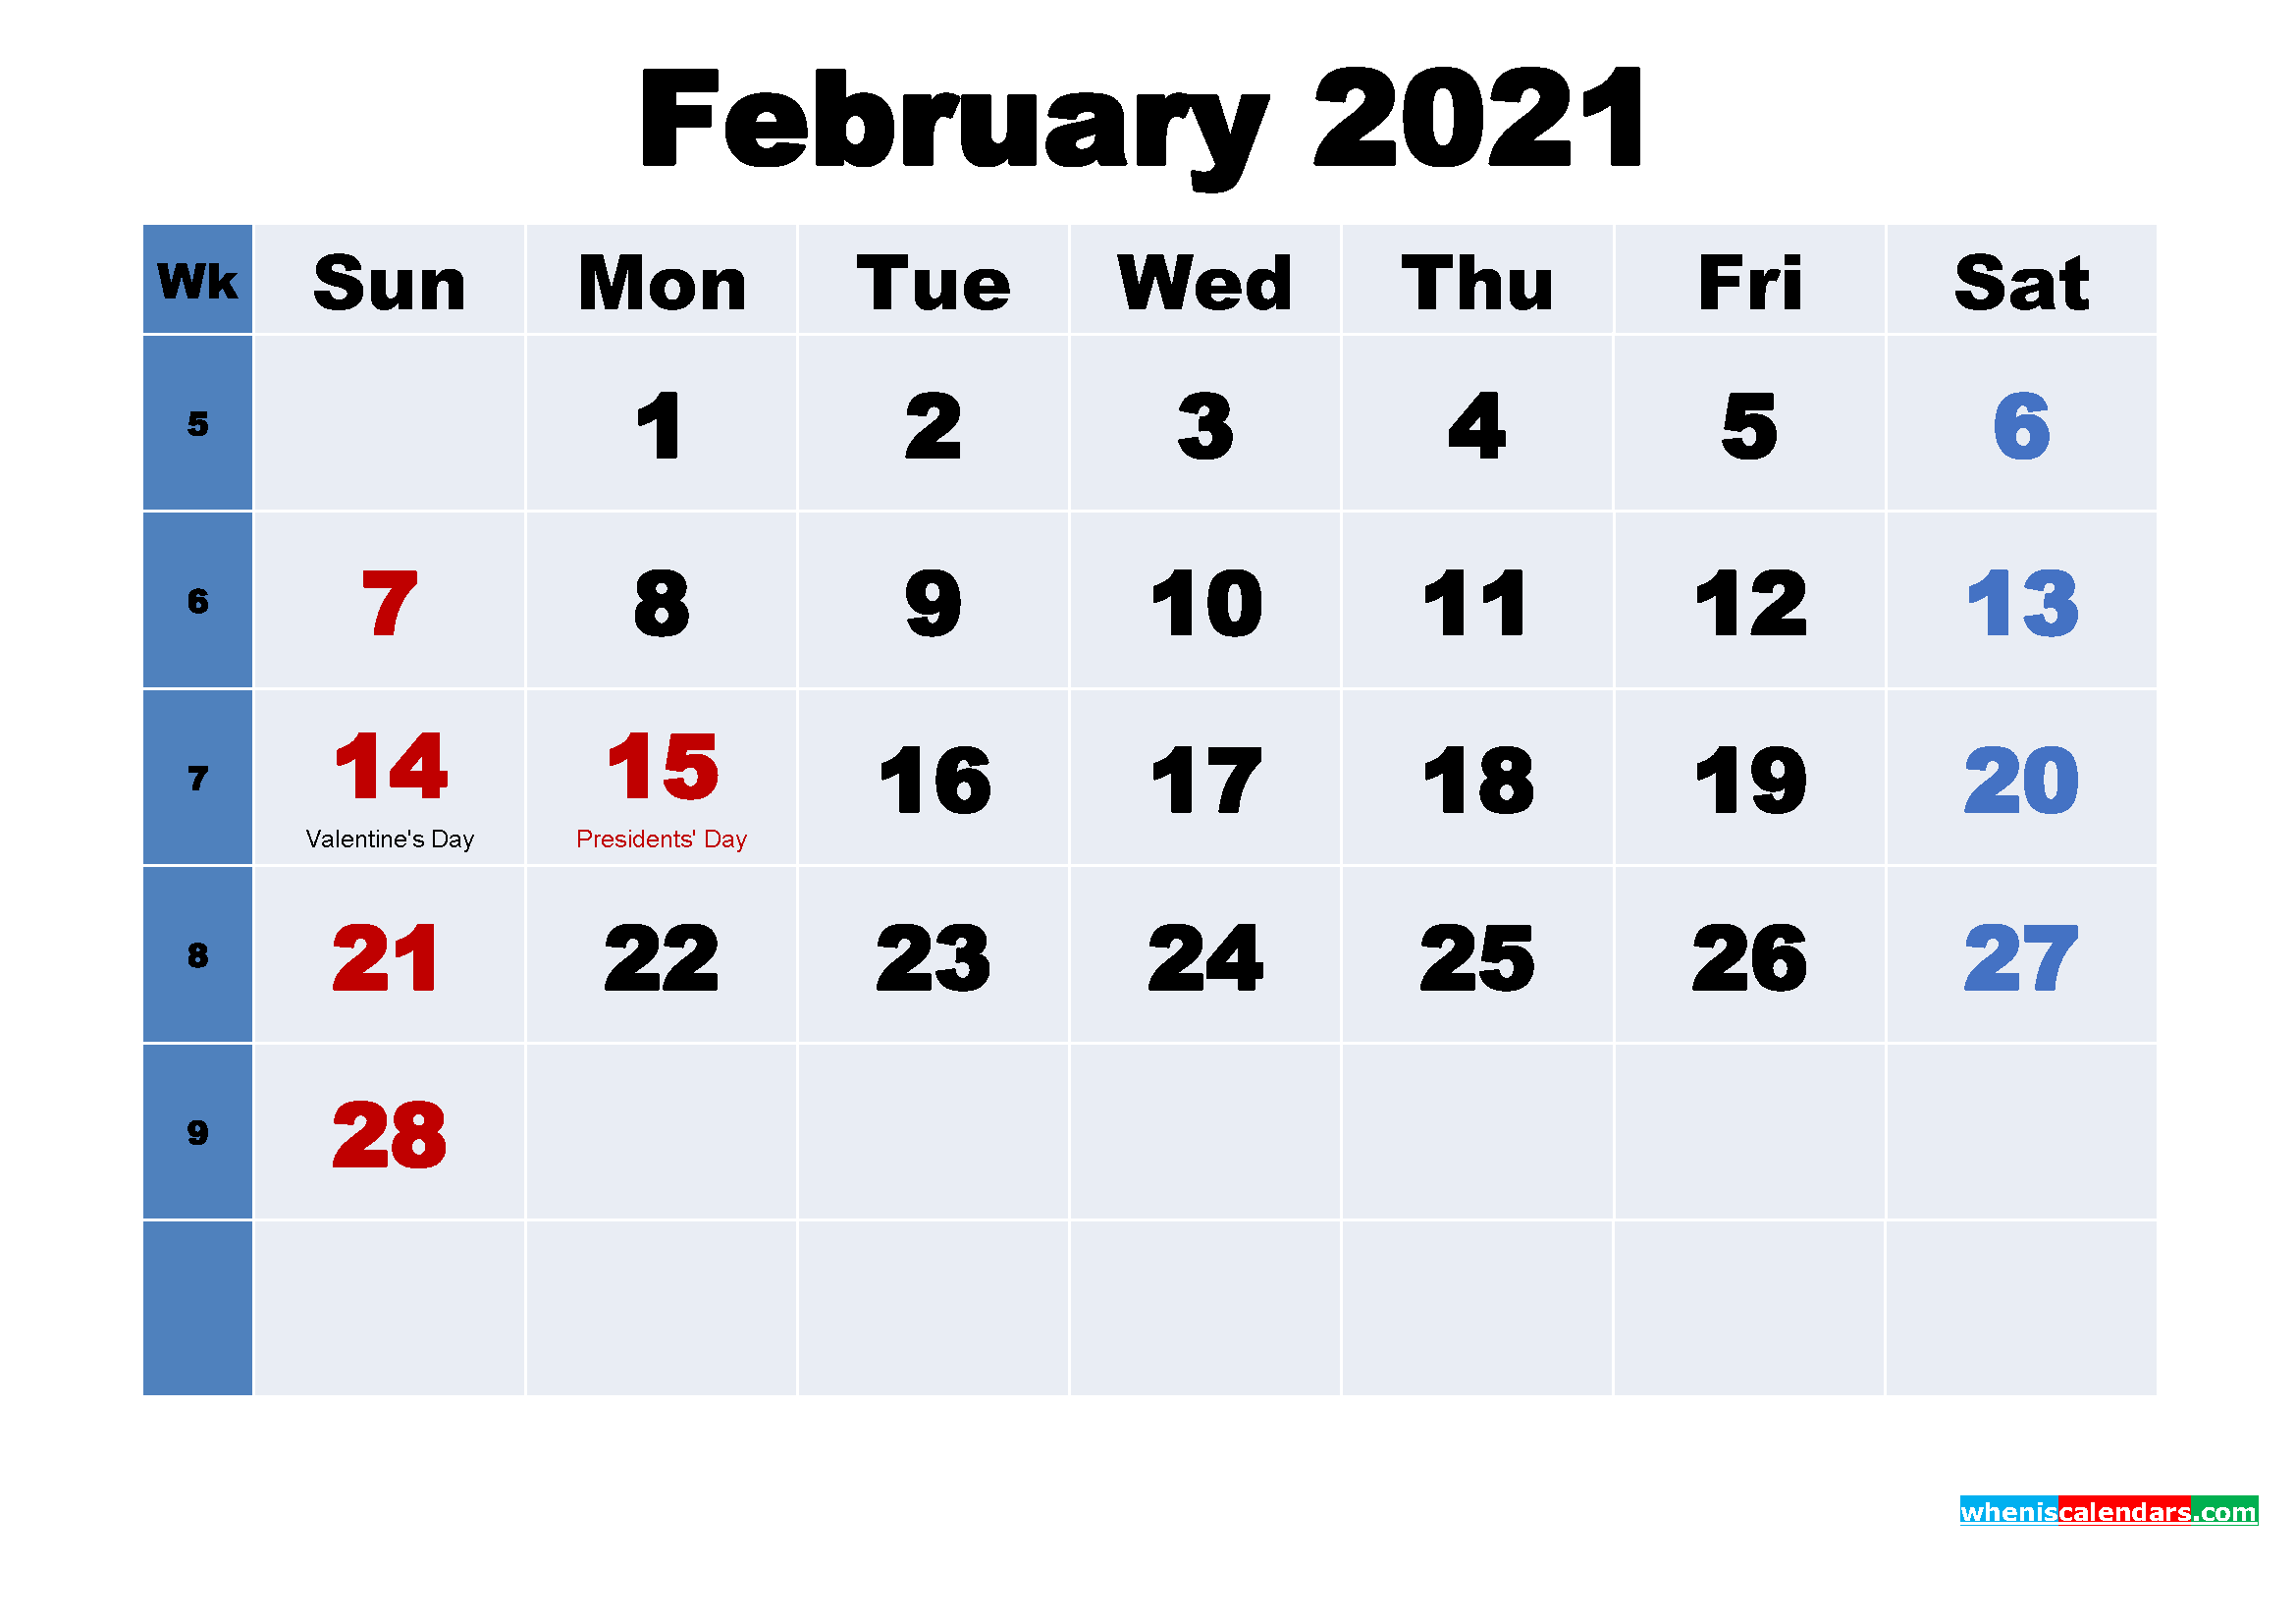 Free 2021 Printable Calendar February as Word, PDF